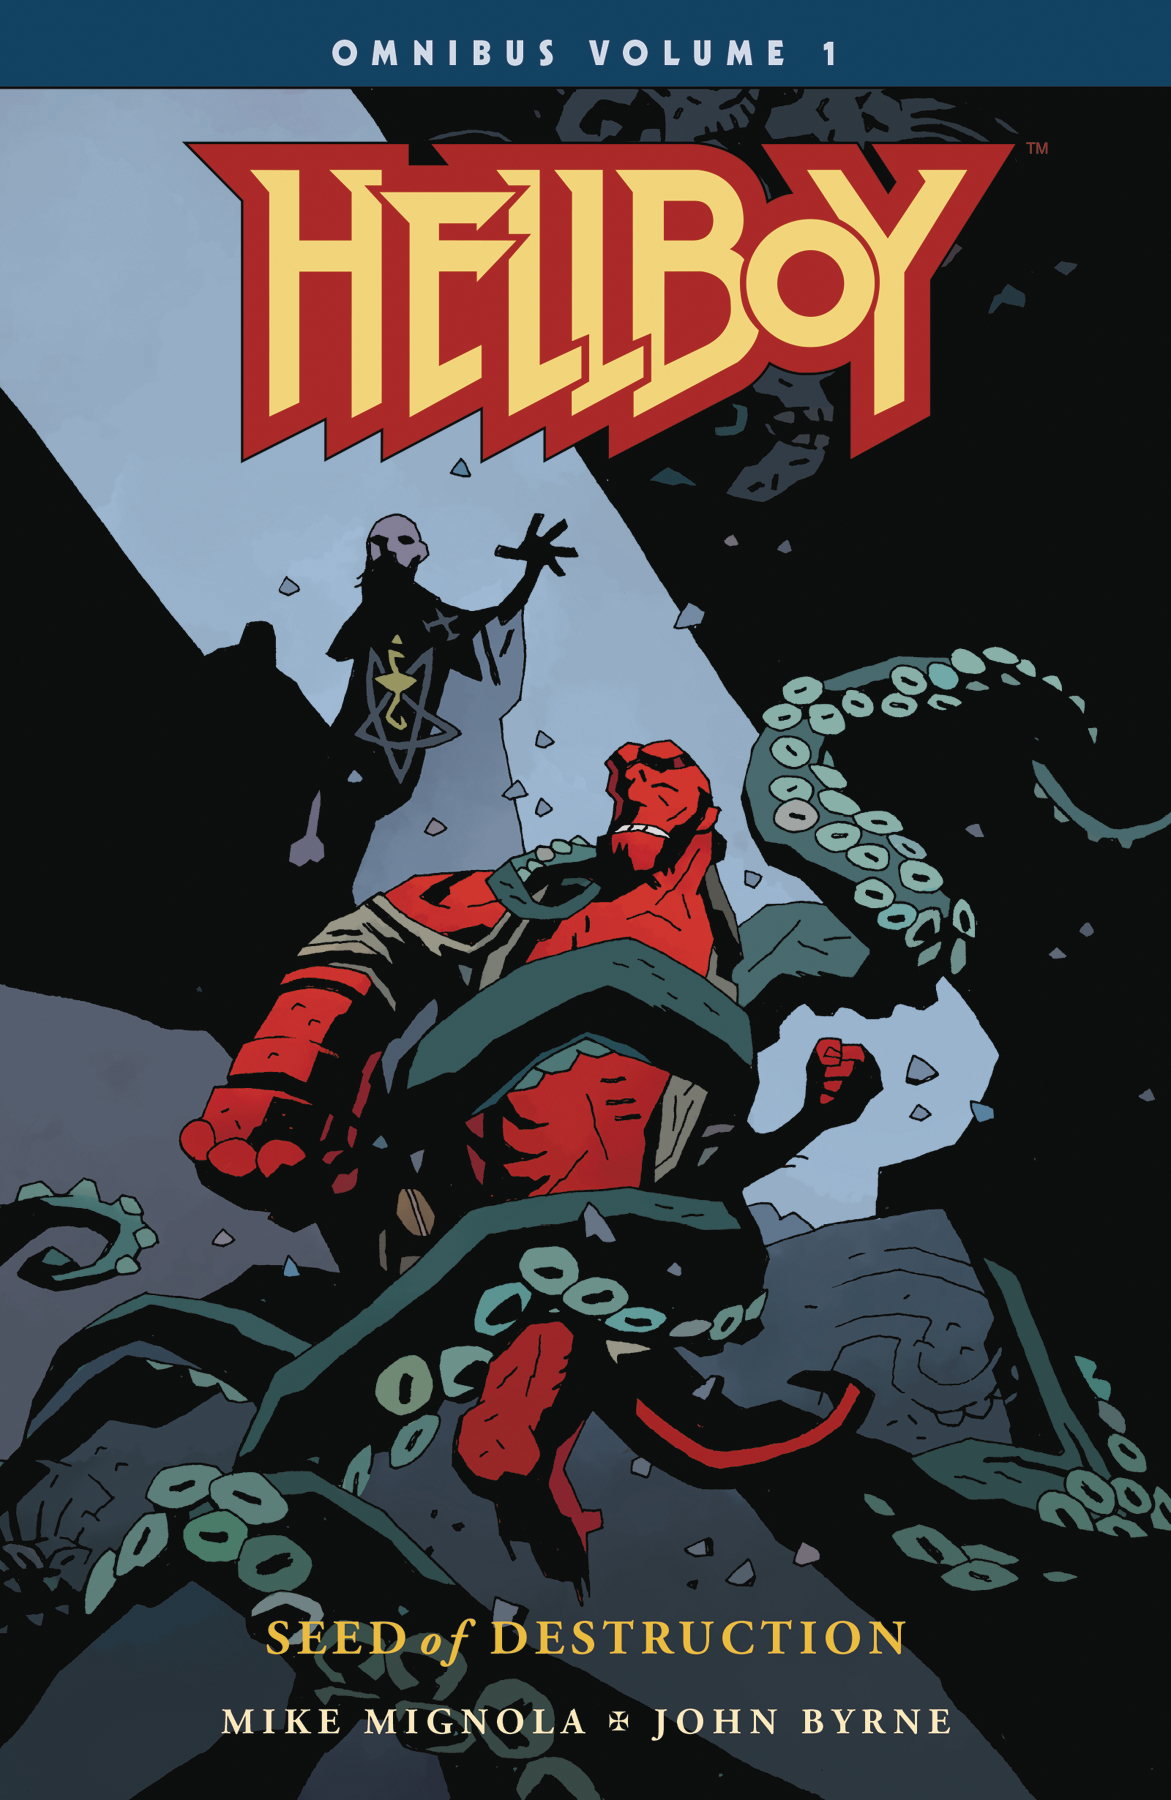 HELLBOY OMNIBUS SEED OF DESTRUCTION TP VOL 01 (JAN180104)